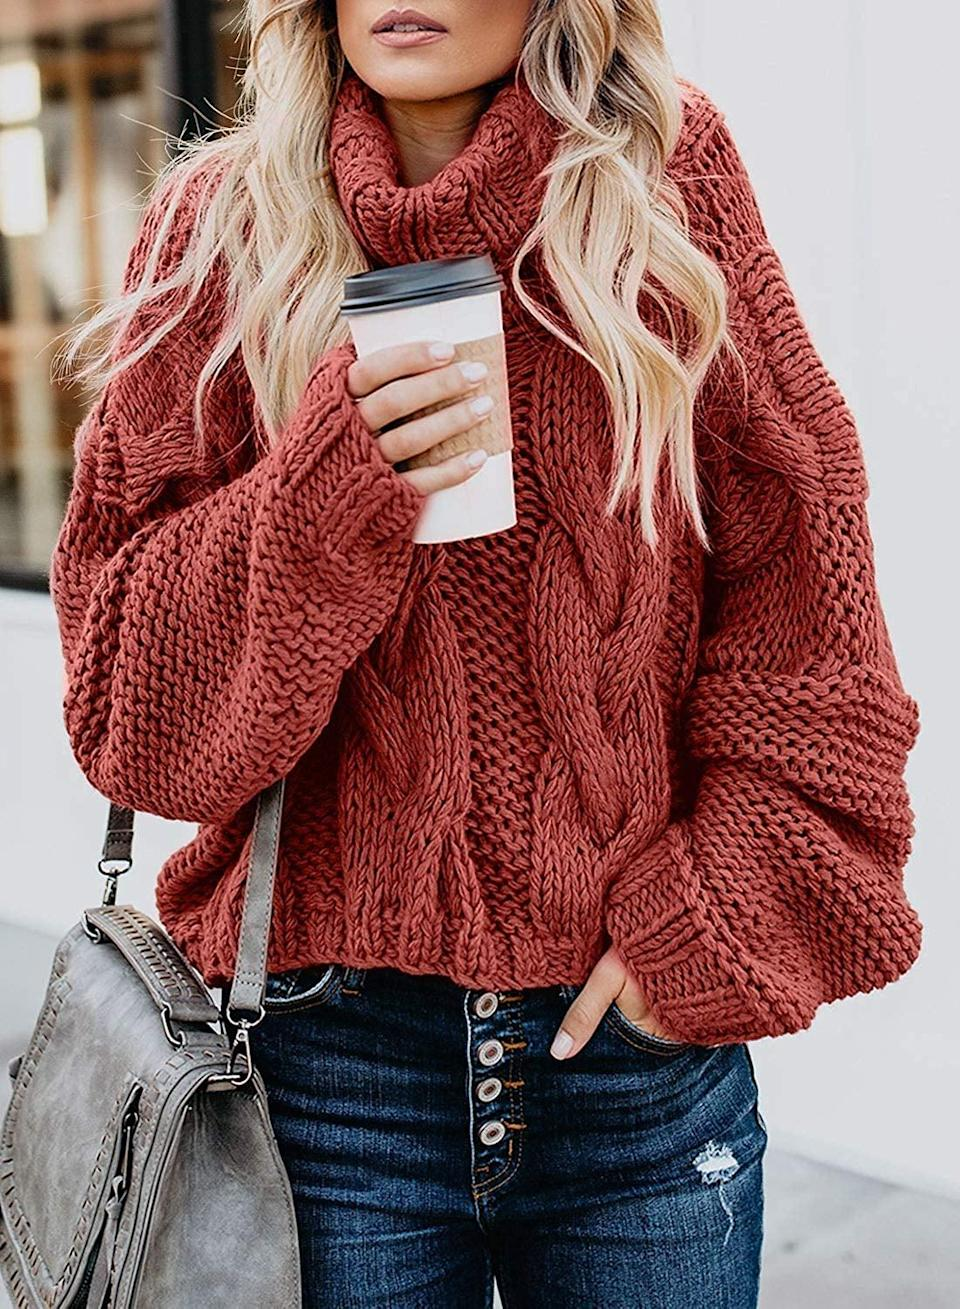 <p>You'll feel comfortable and cozy in this <span>Asvivid Turtleneck Sweater</span> ($36, originally $44). The fit will allow you to move freely, while the fabric is great for keeping chills away.</p>